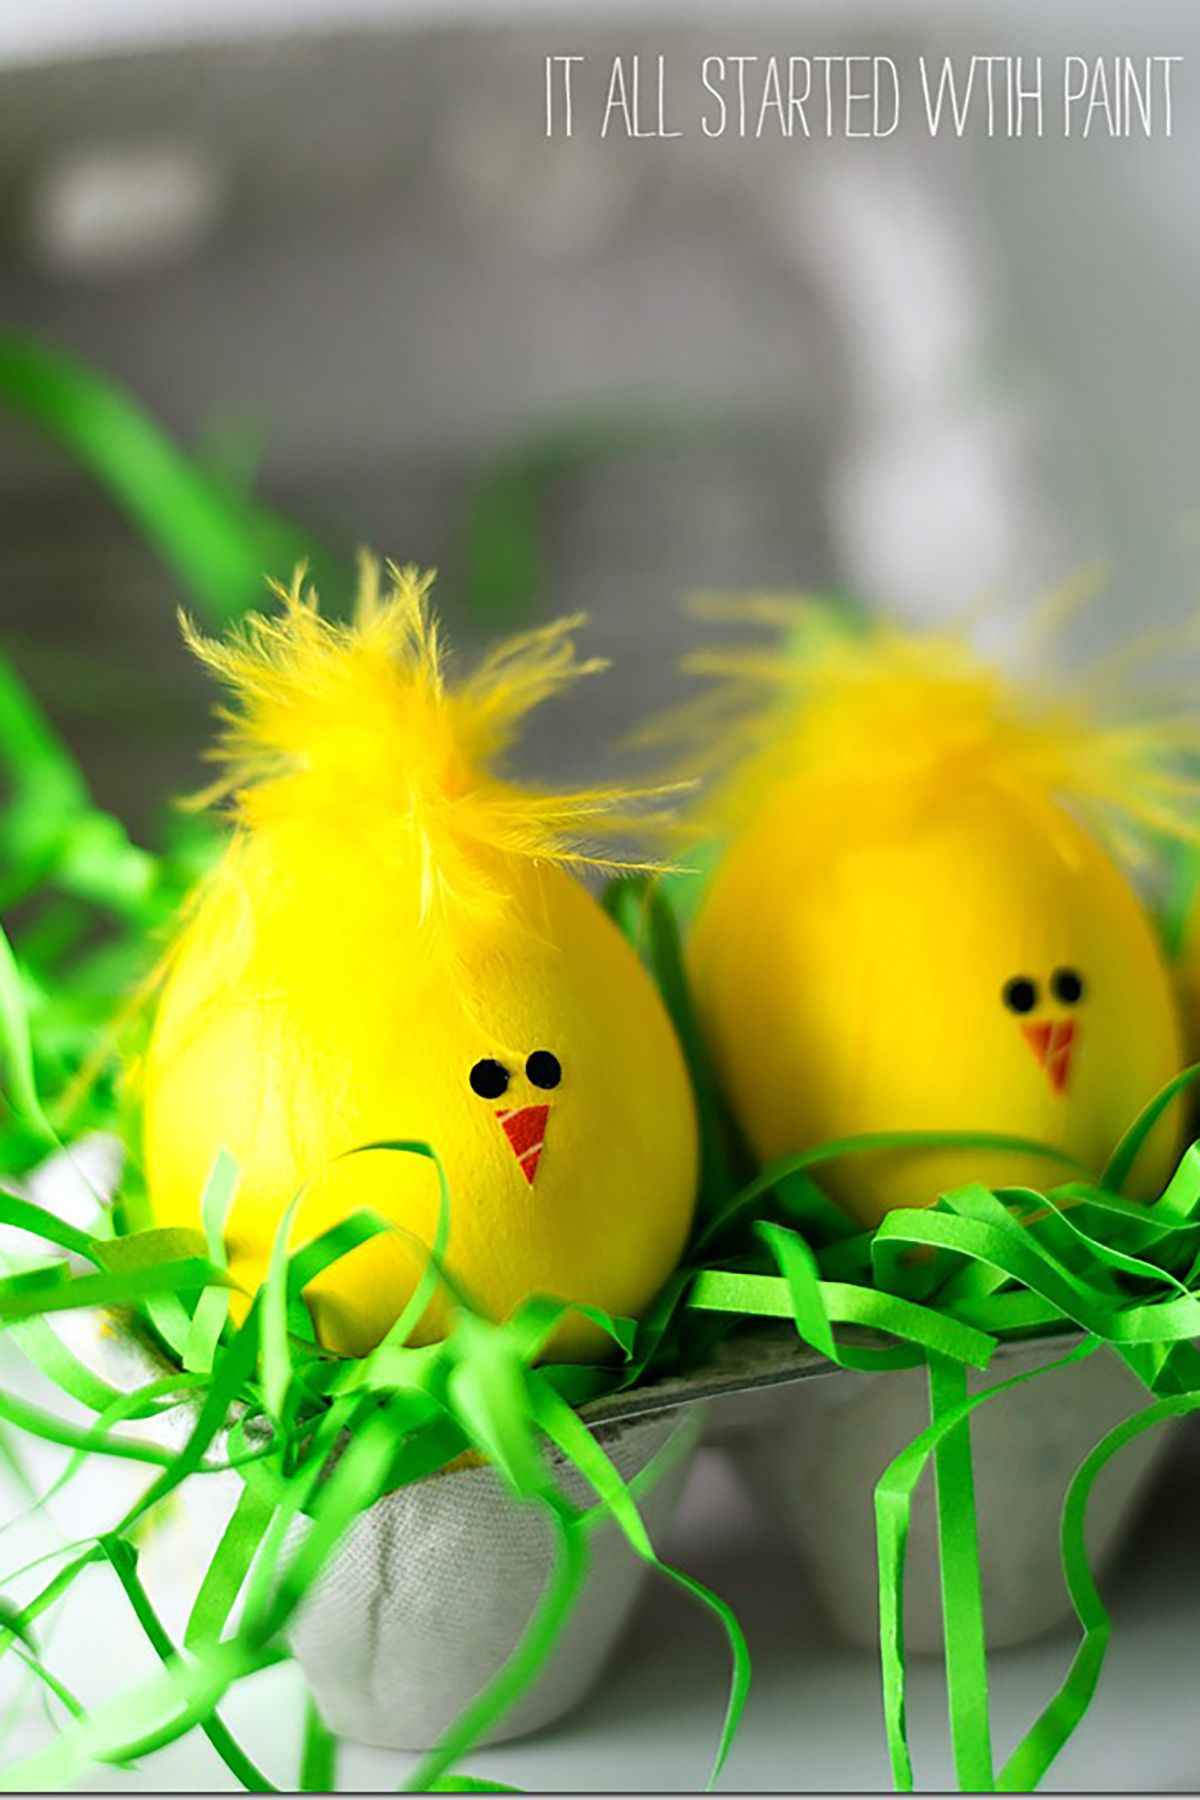 60 Fun Easter Egg Designs Creative Ideas For Decorating Country Living